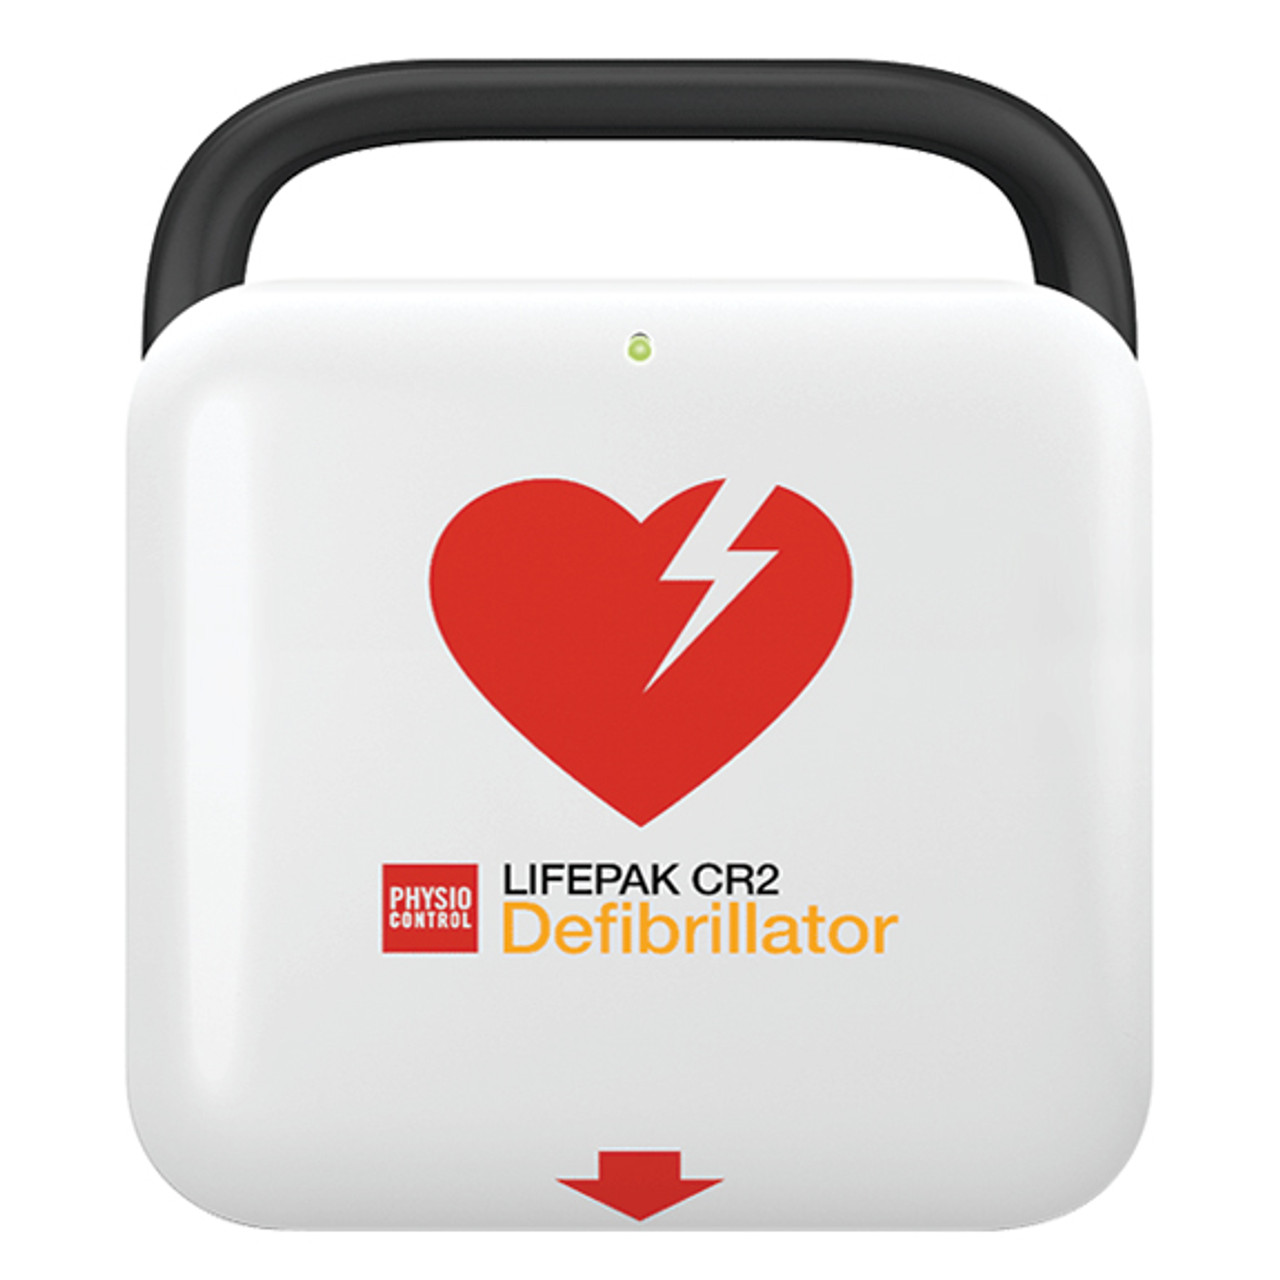 LIFEPAK CR2 Semi-Automatic AED